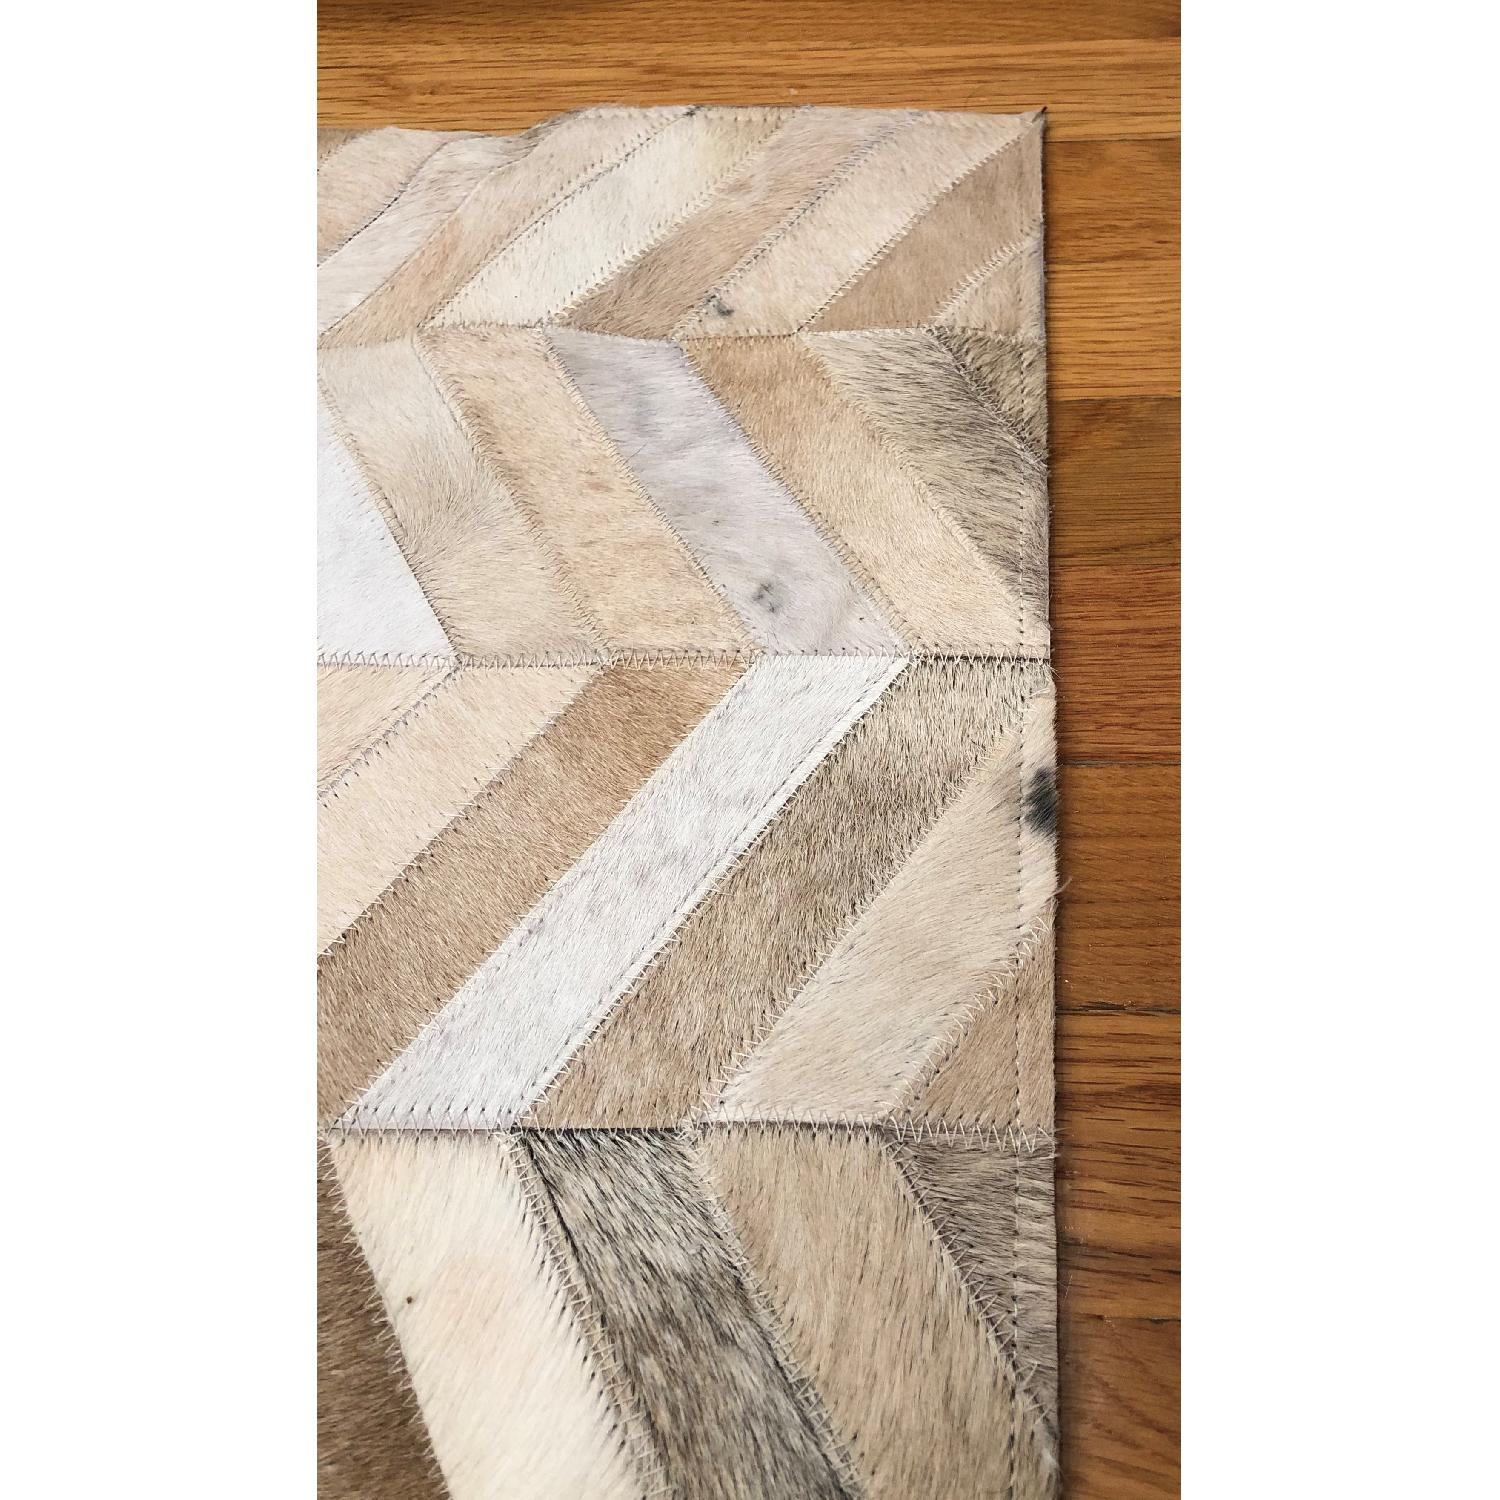 Restoration Hardware Chevron Cowhide Rug in Sand-1